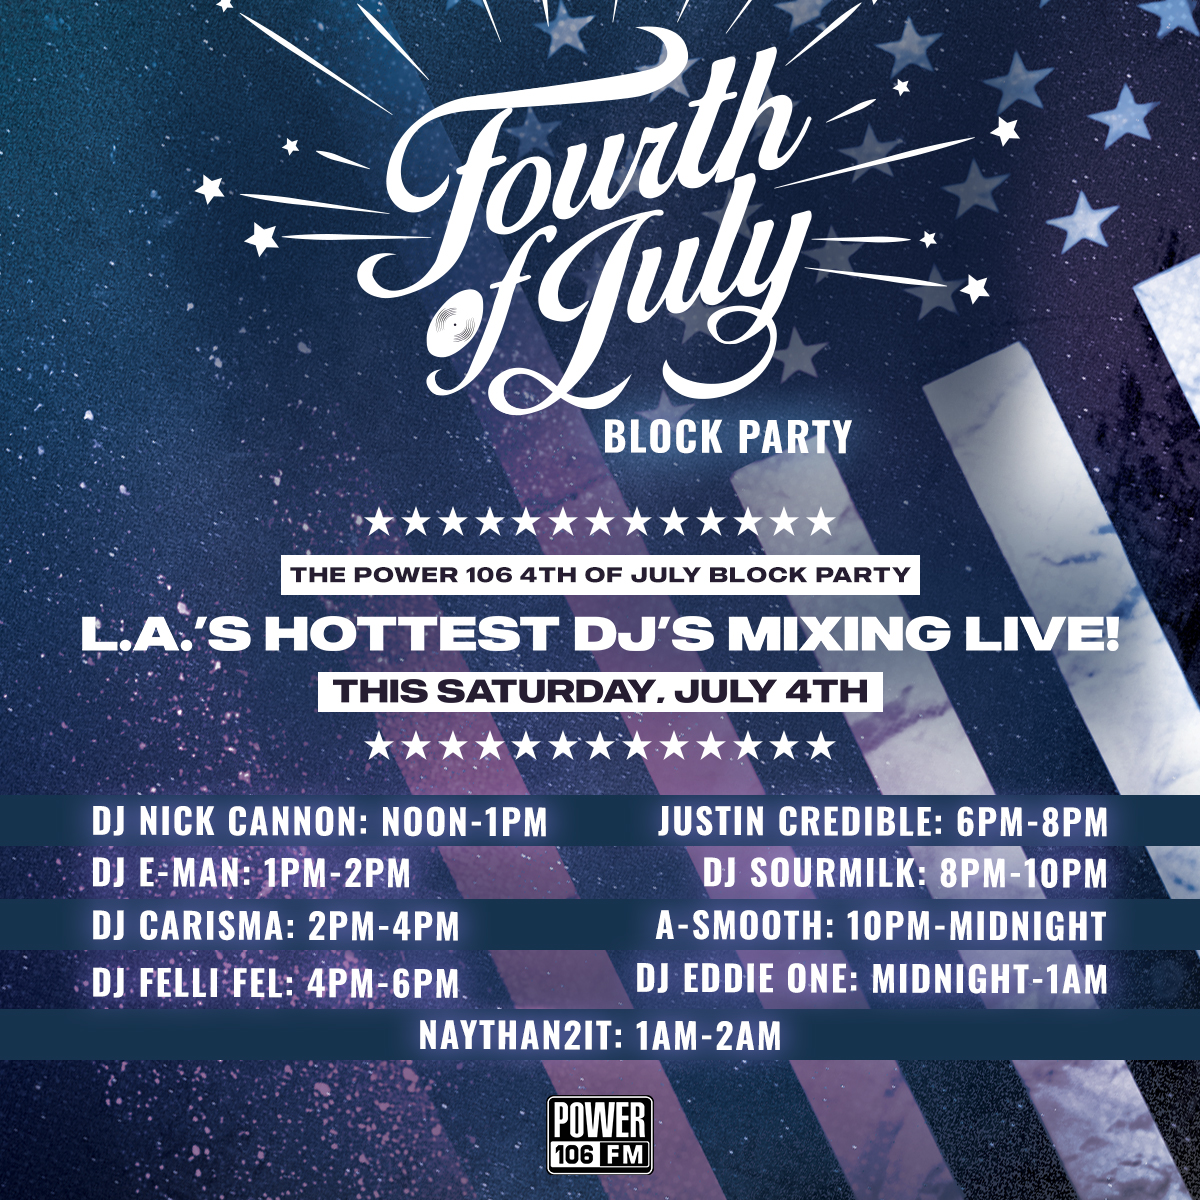 AYYYYEEE‼️ Be sure to turn us up as it's going down this Saturday for the #POWER106 4th of July Block Party!  Stay connected, take us with you and LISTEN LIVE on our Streaming App, via your Smart Speakers, and OF COURSE on https://t.co/RjIeNgYj8V. https://t.co/tAlZr6dppV